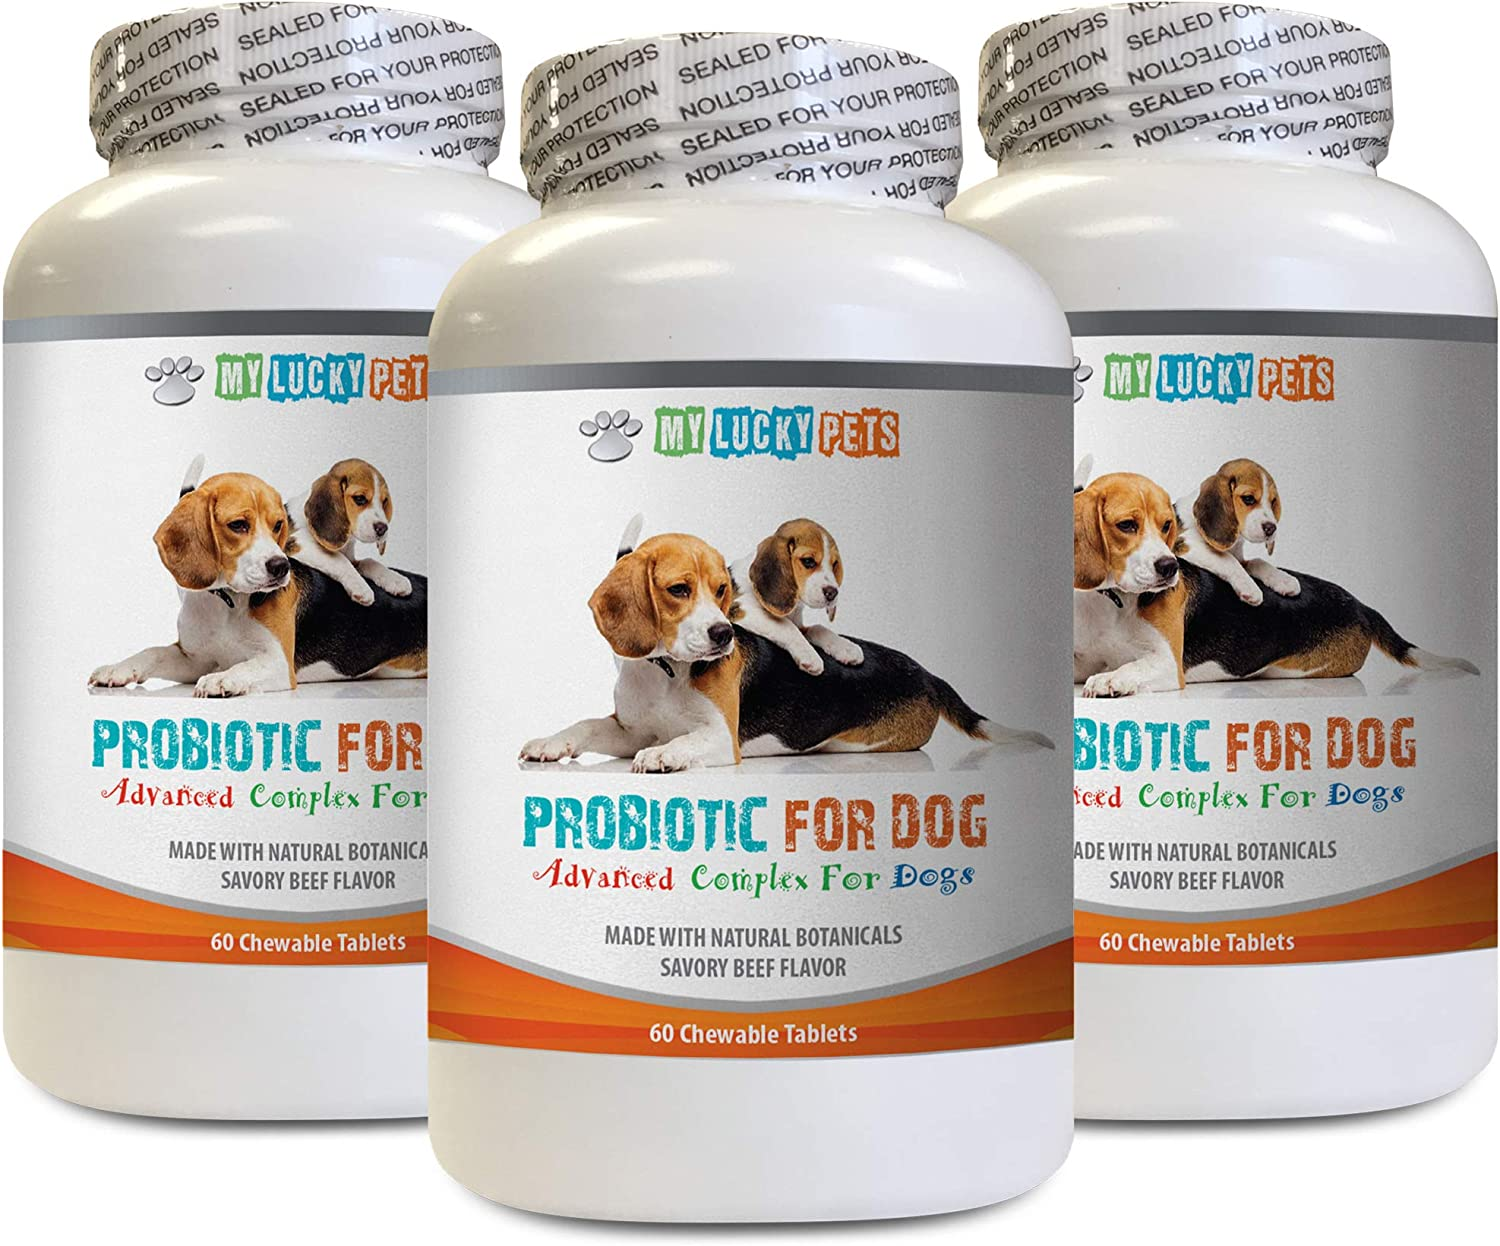 MY LUCKY PETS LLC Digestive Omaha Mall upsets PROBIOTICS shop Dog B for Dogs -